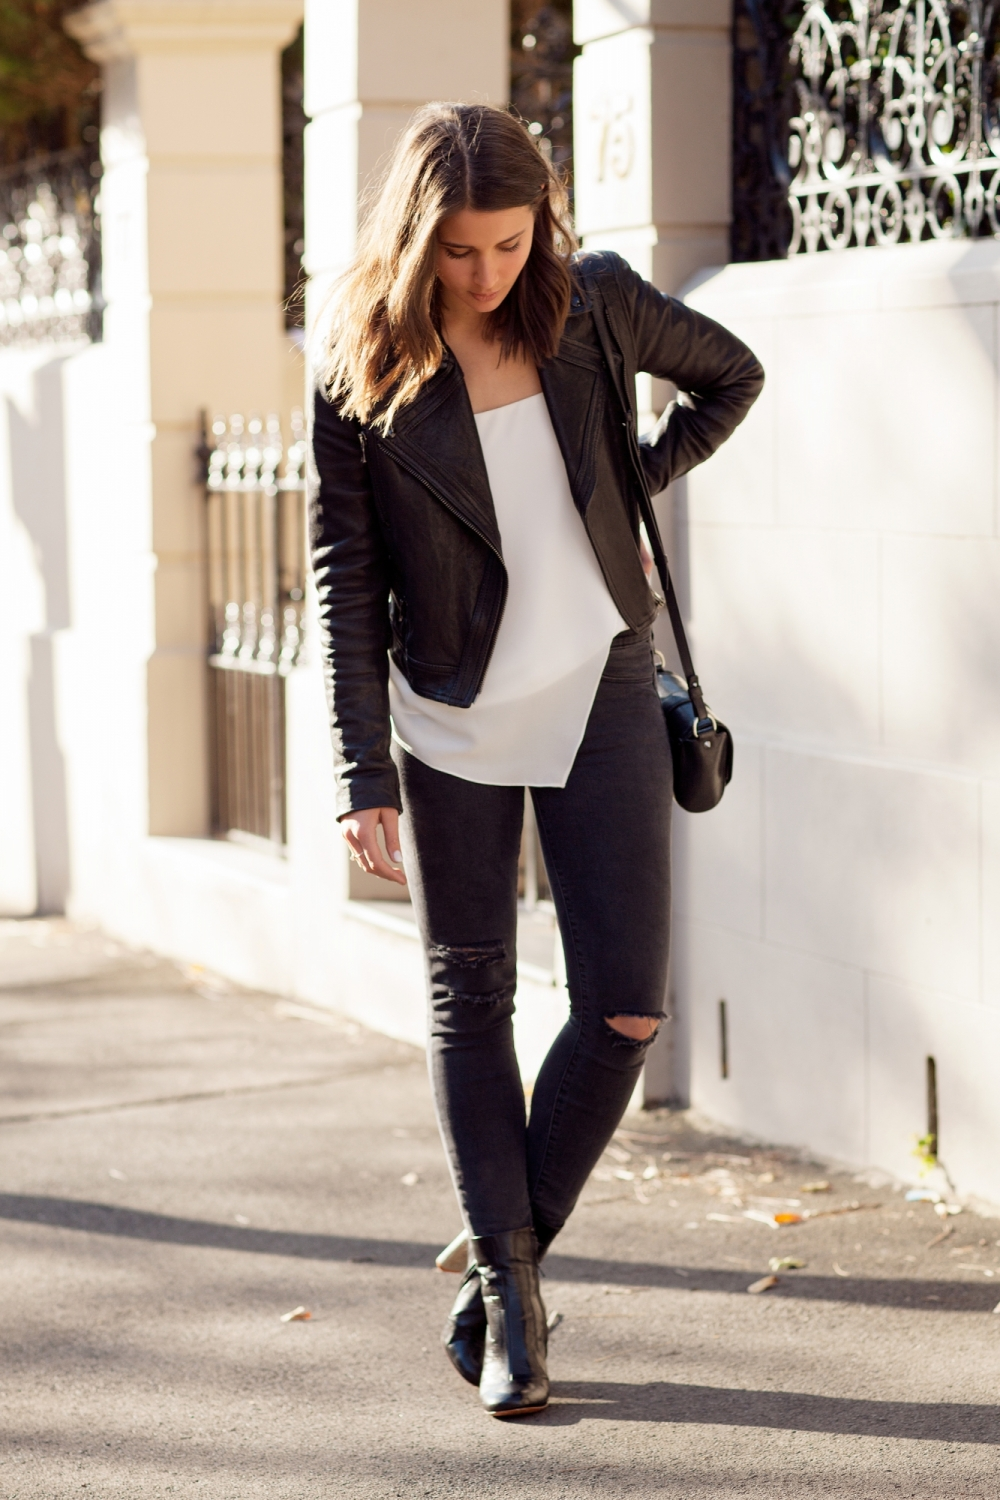 harper and harley_fashion blogger_minimal_leather jacket_camilla and marc_02